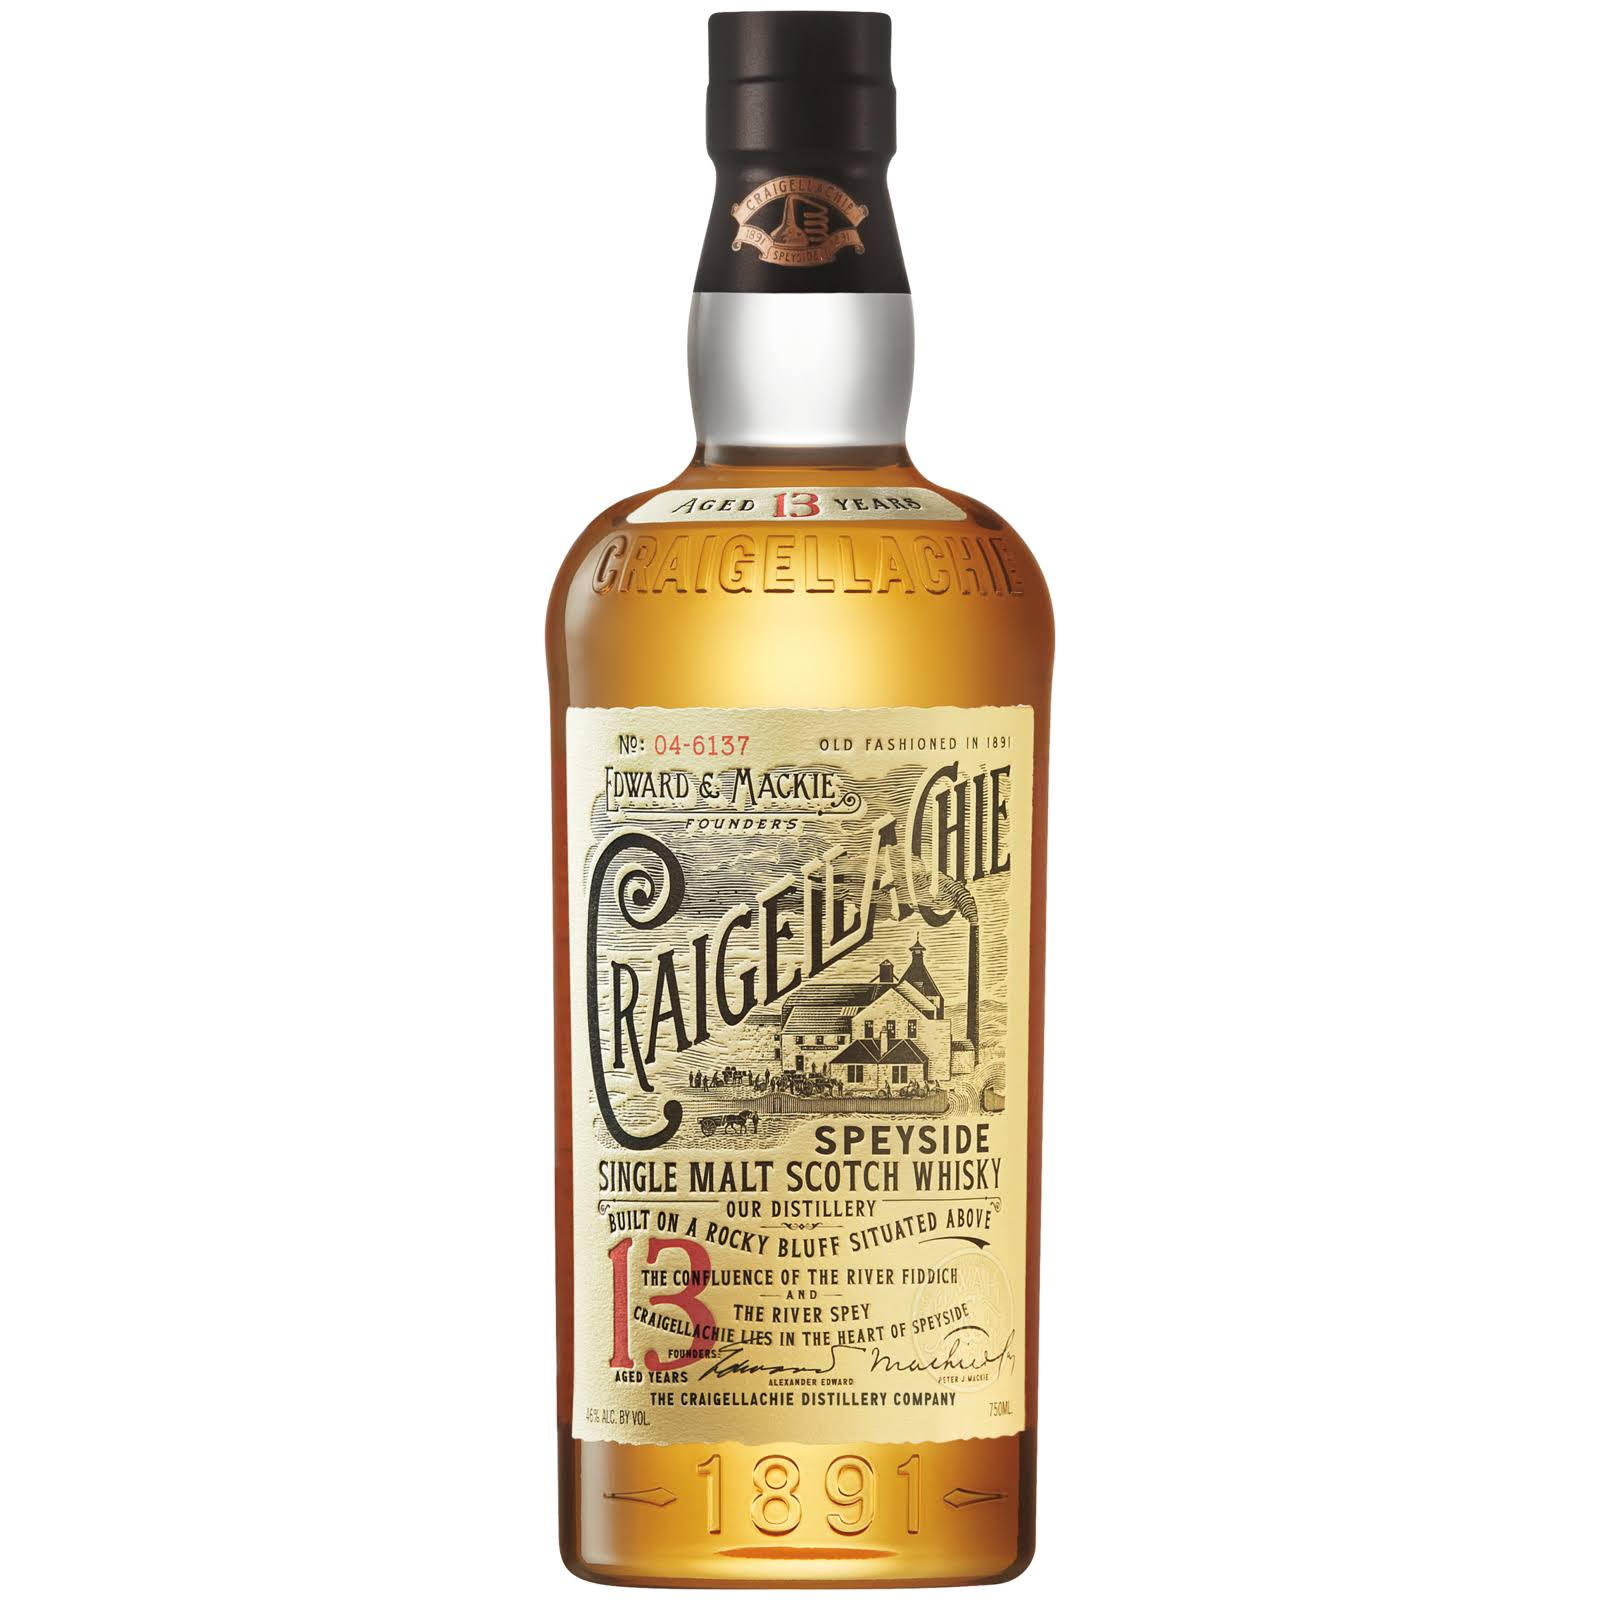 Craigellachie 13yr. Single Malt Scotch